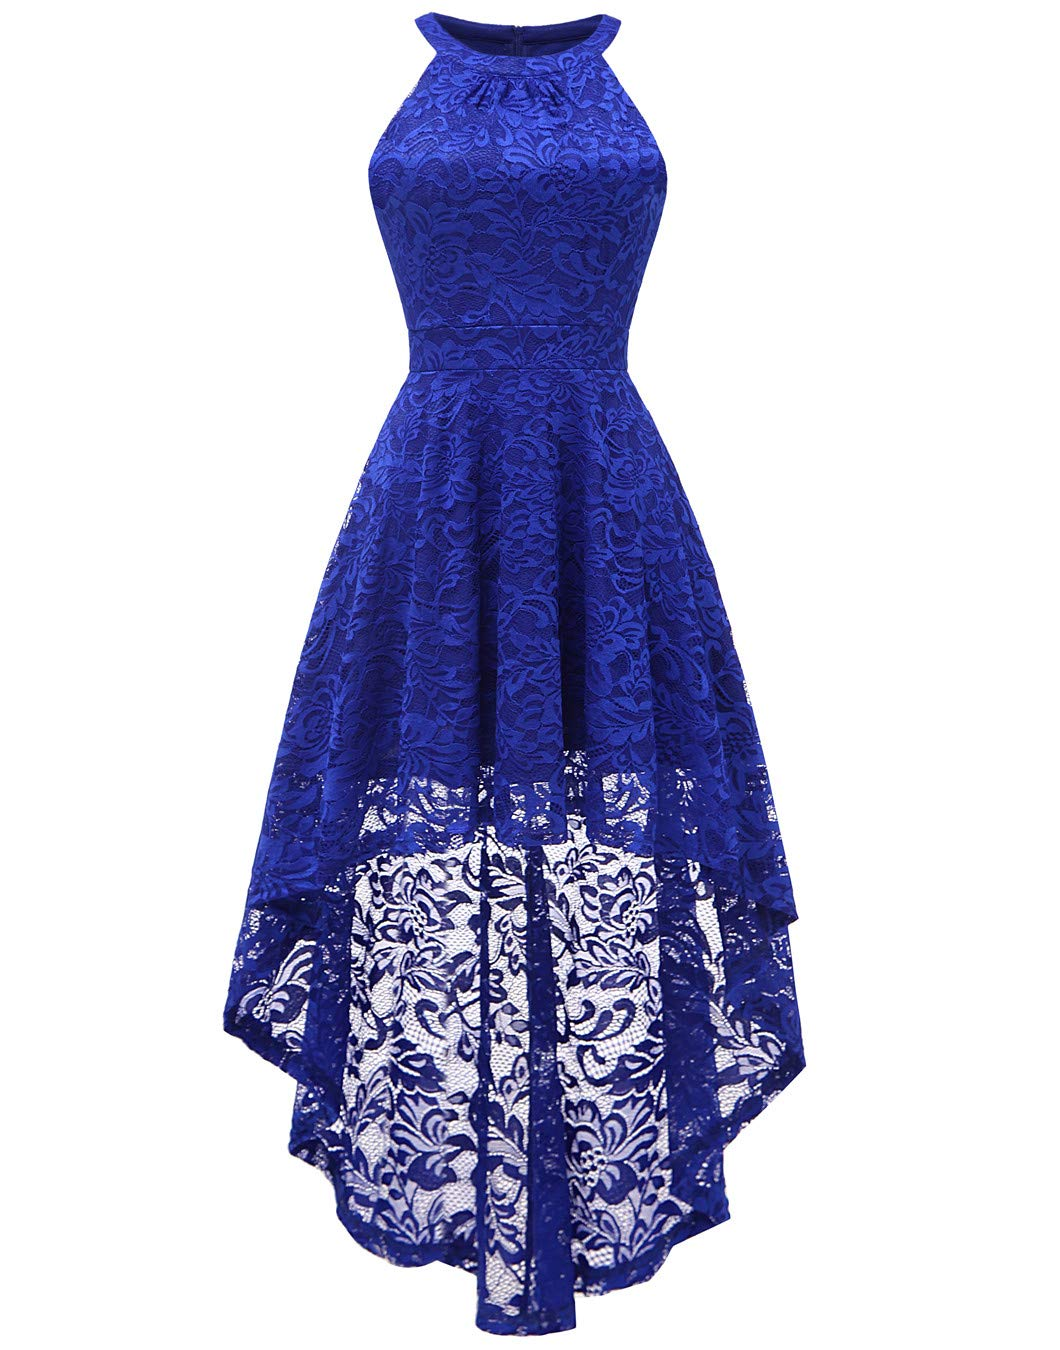 Available at Amazon: BeryLove Women's Halter Hi-Lo Floral Lace Cocktail Party Dress Bridesmaid Formal Swing Dress